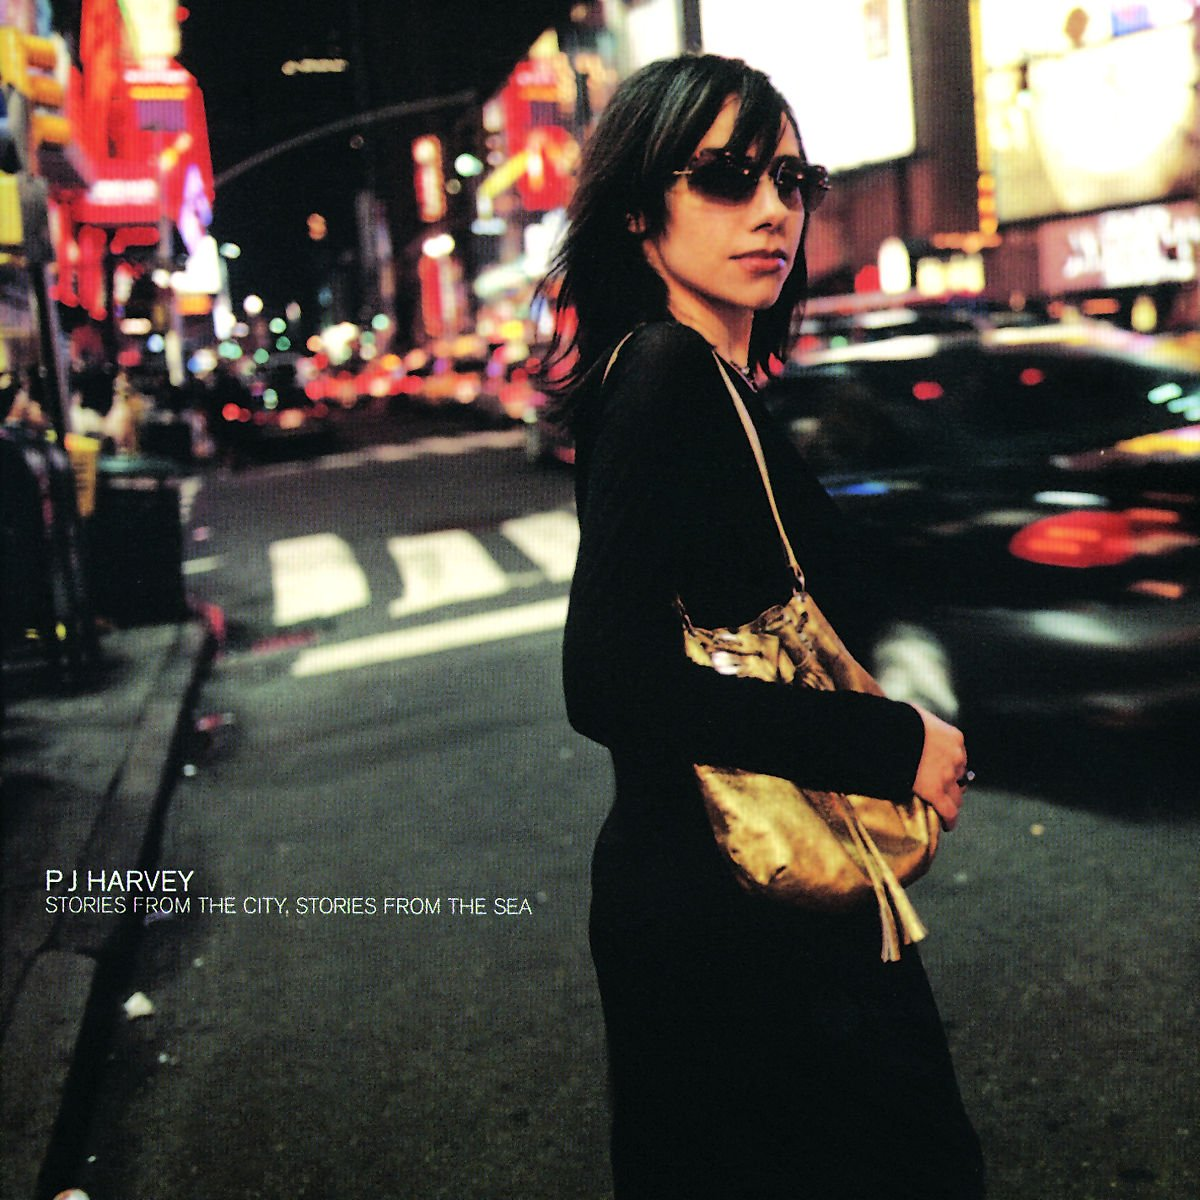 Image result for pj harvey stories from the city